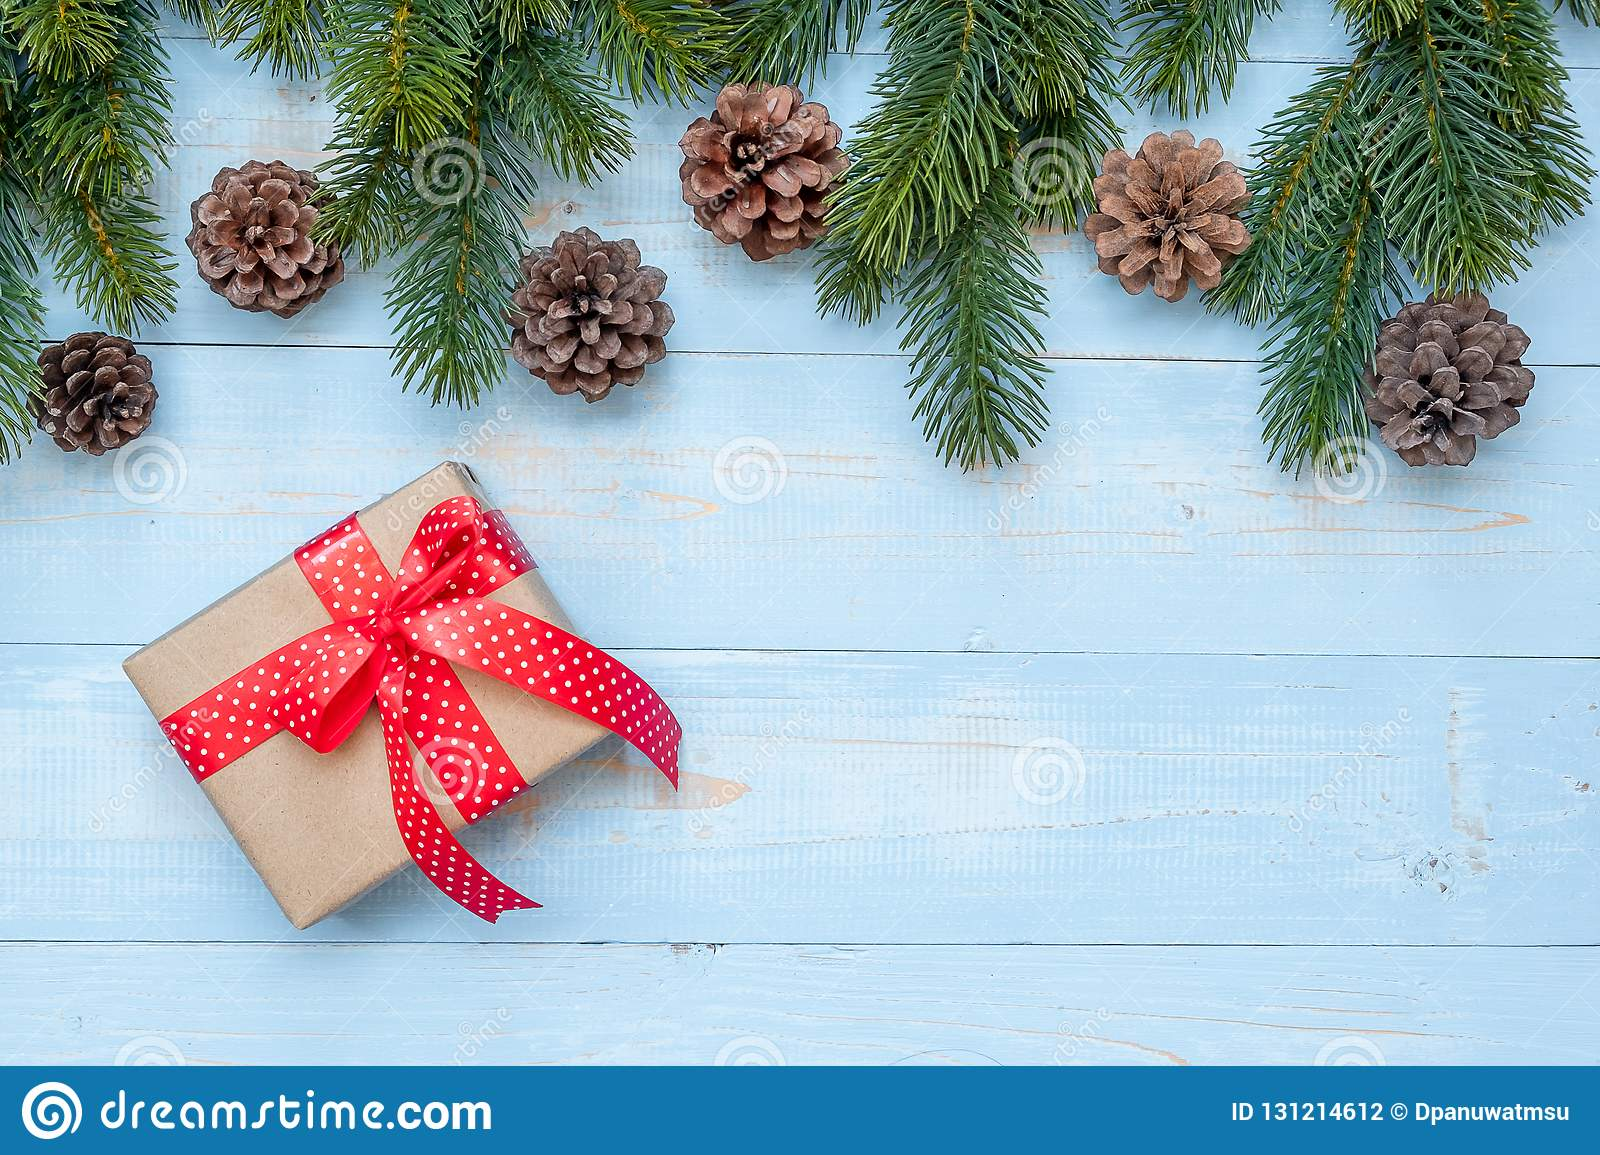 Christmas decoration, gift box and pine tree branches on wooden background, preparation for holiday concept, Happy New Year and Xm